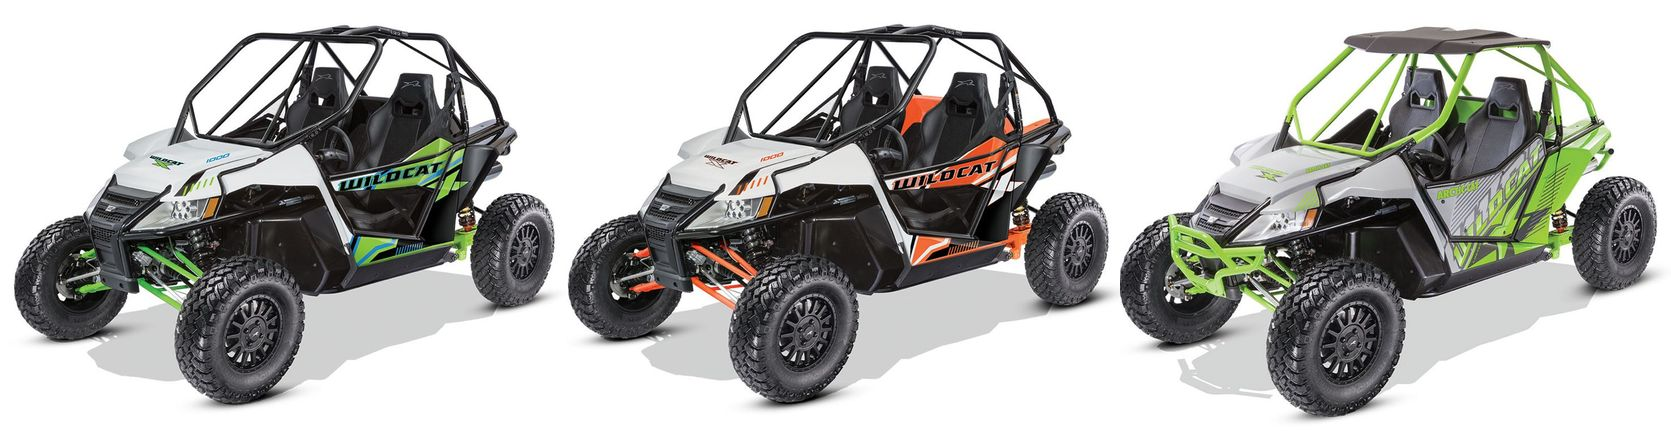 2017 Arctic Cat Wildcat X EPS models. Photo at ArcticInsider.com